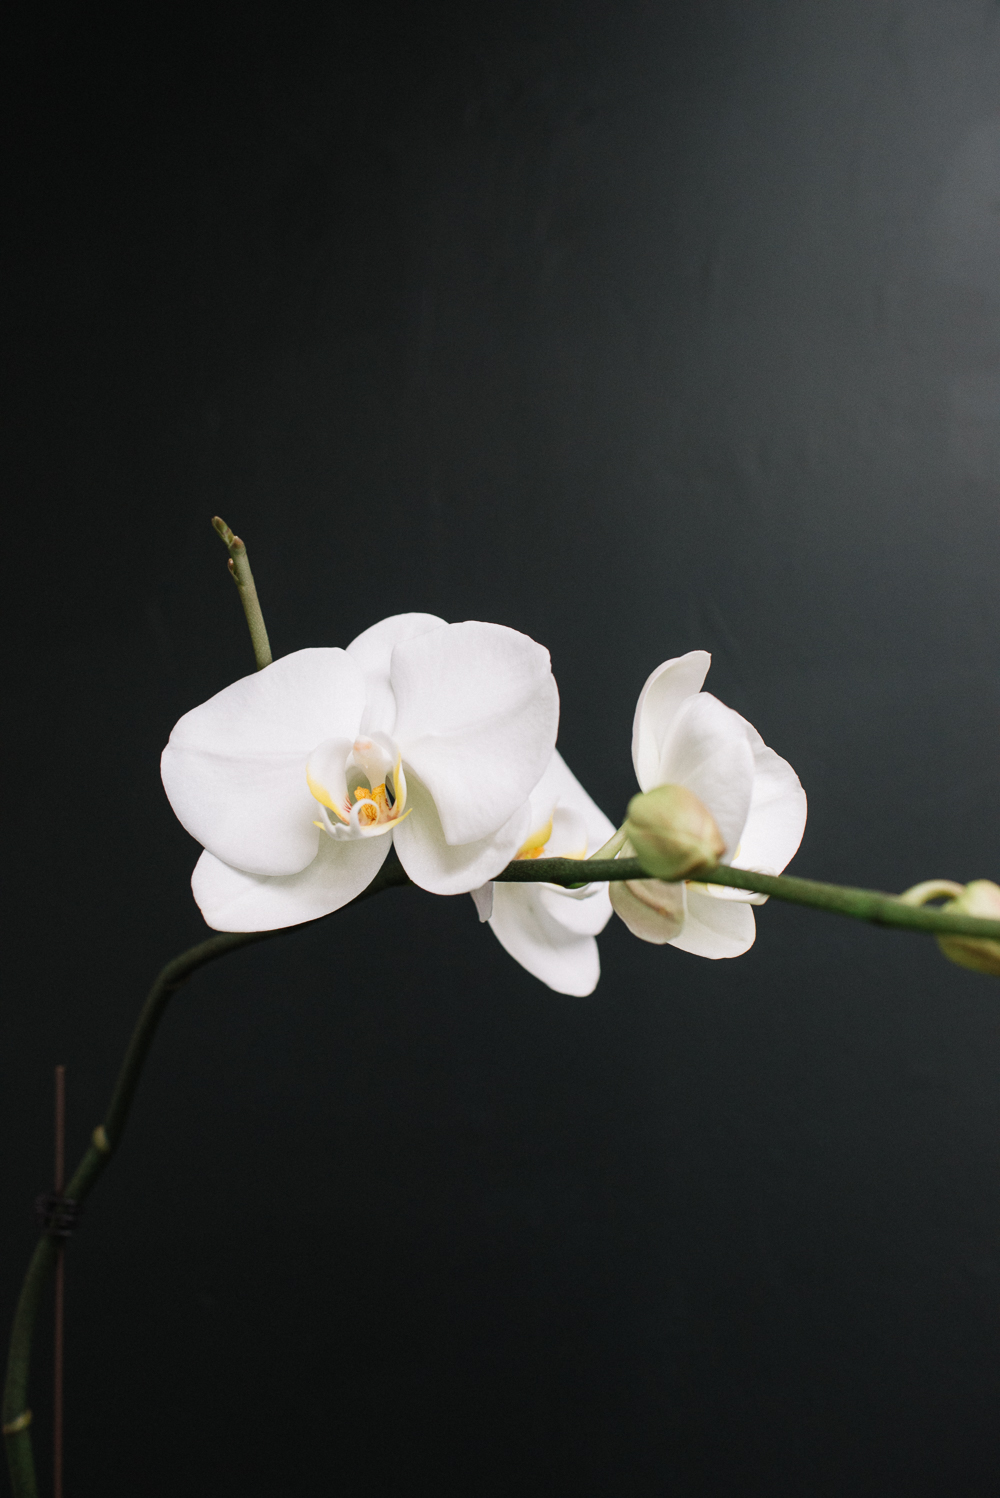 Mission de Flores Blog: Flowers To Give For Sympathy - White Orchids